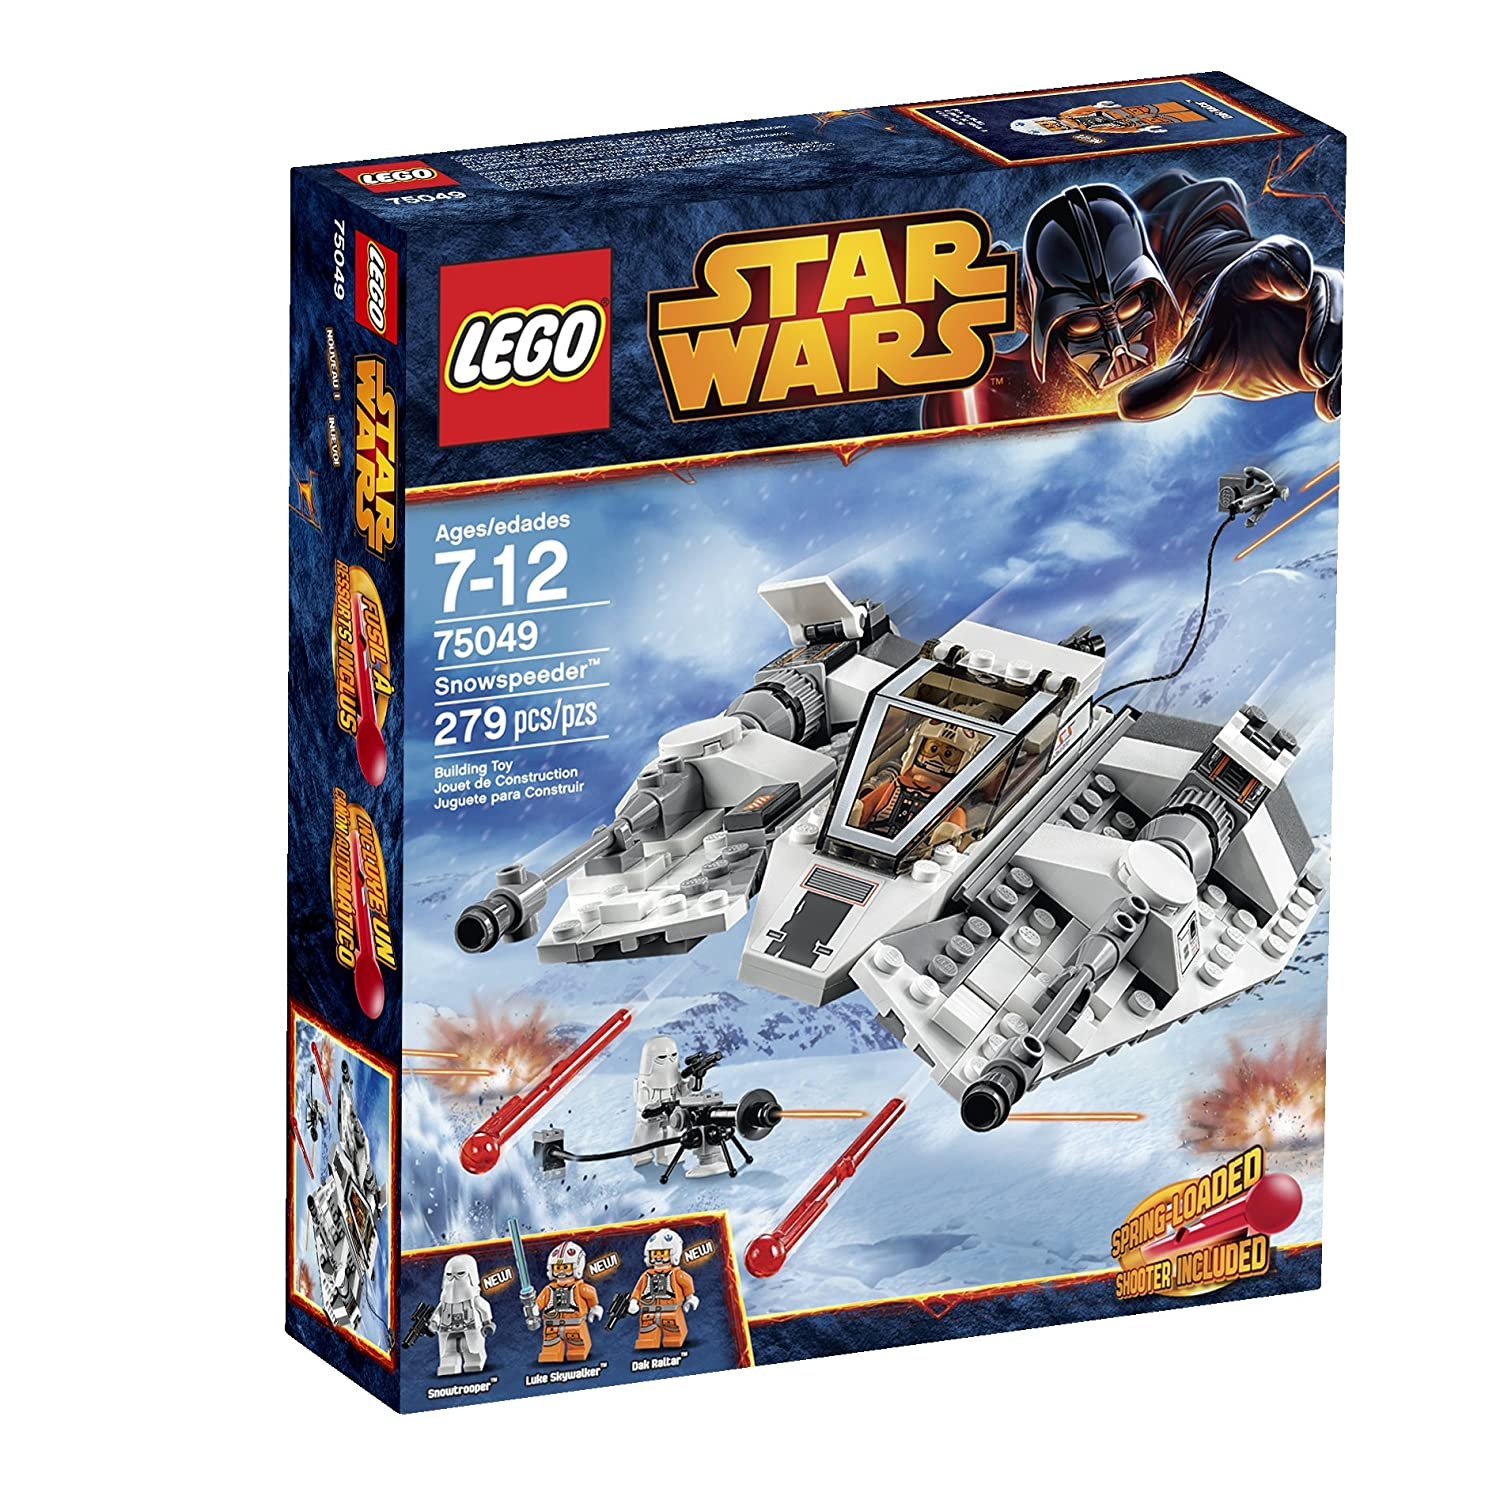 Top 9 Best LEGO Snowspeeder Sets Reviews in 2021 13